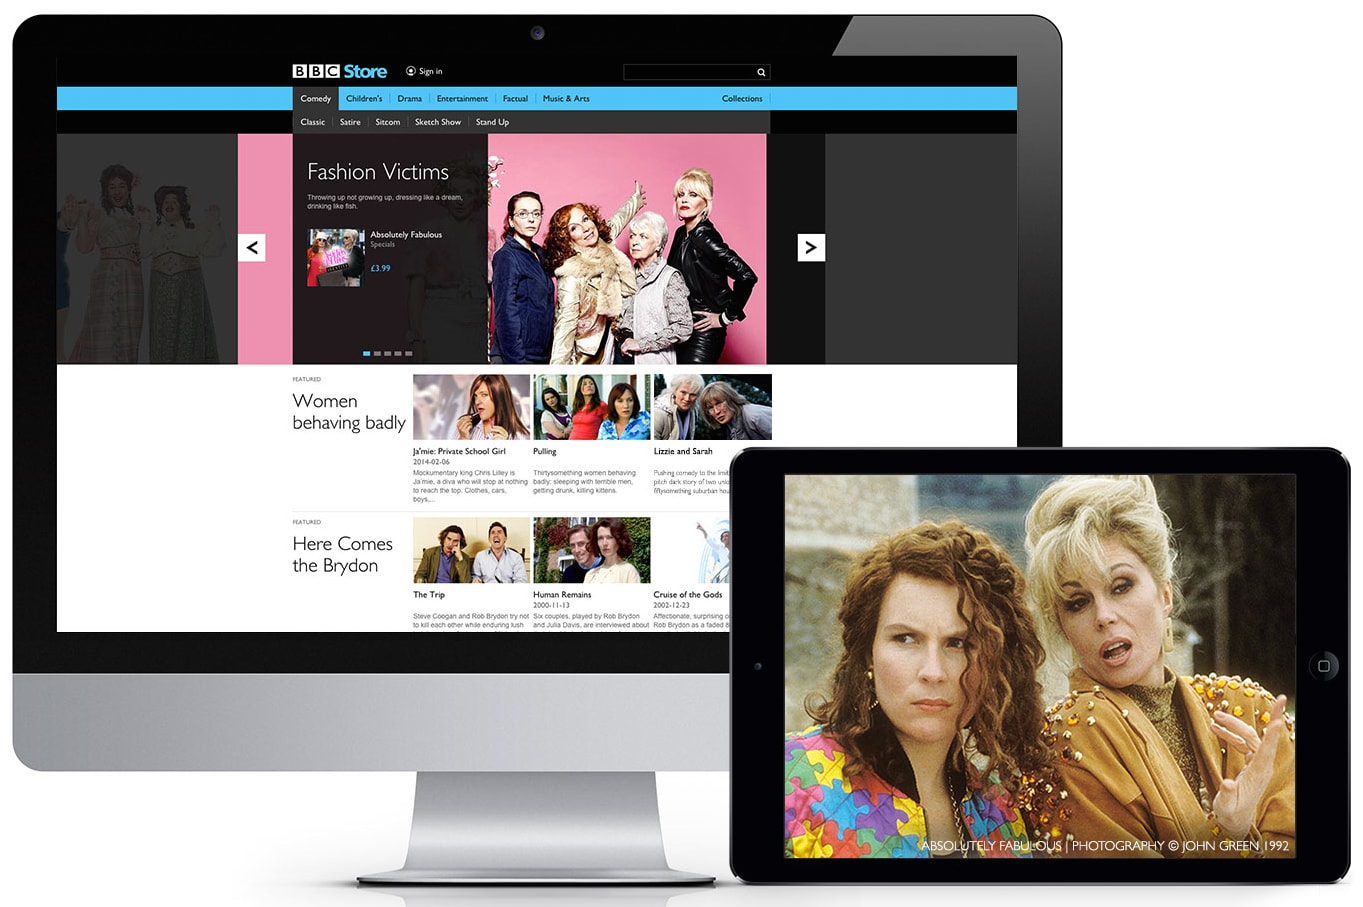 BBC Store lets you buy and download classic TV shows